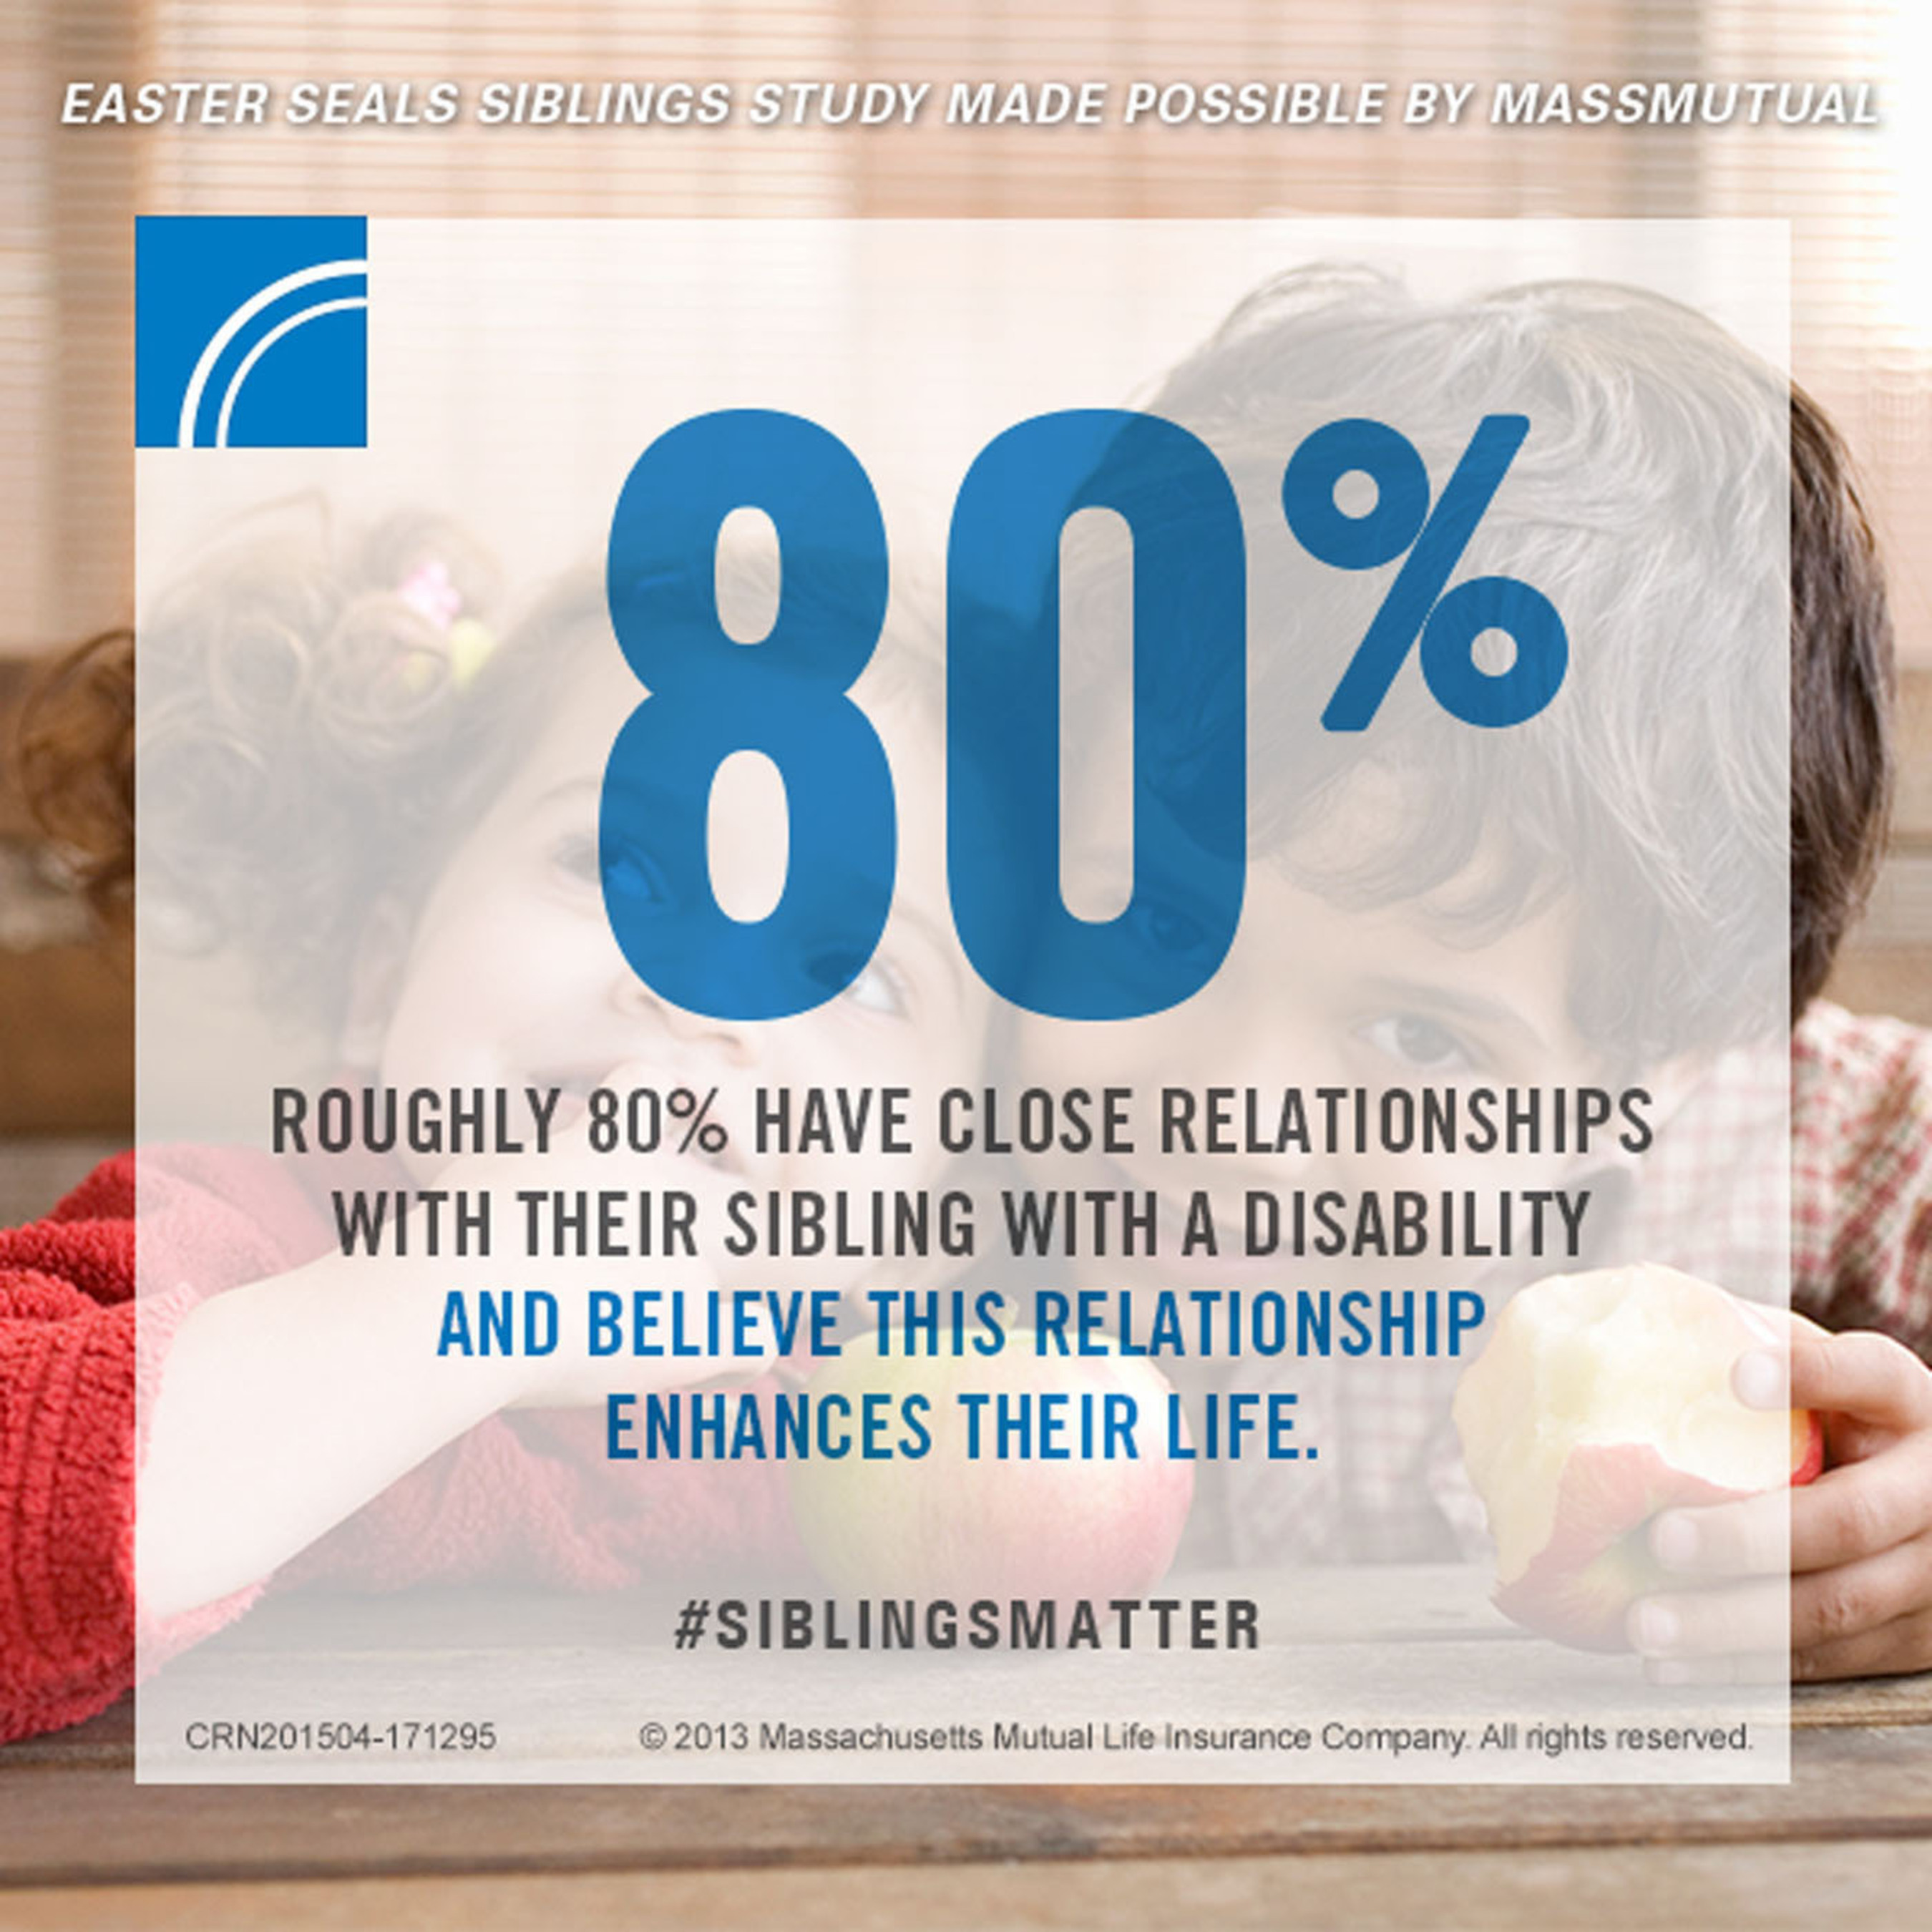 Easter Seals' Siblings Study, which was sponsored by MassMutual, revealed that 80 percent of respondents ...